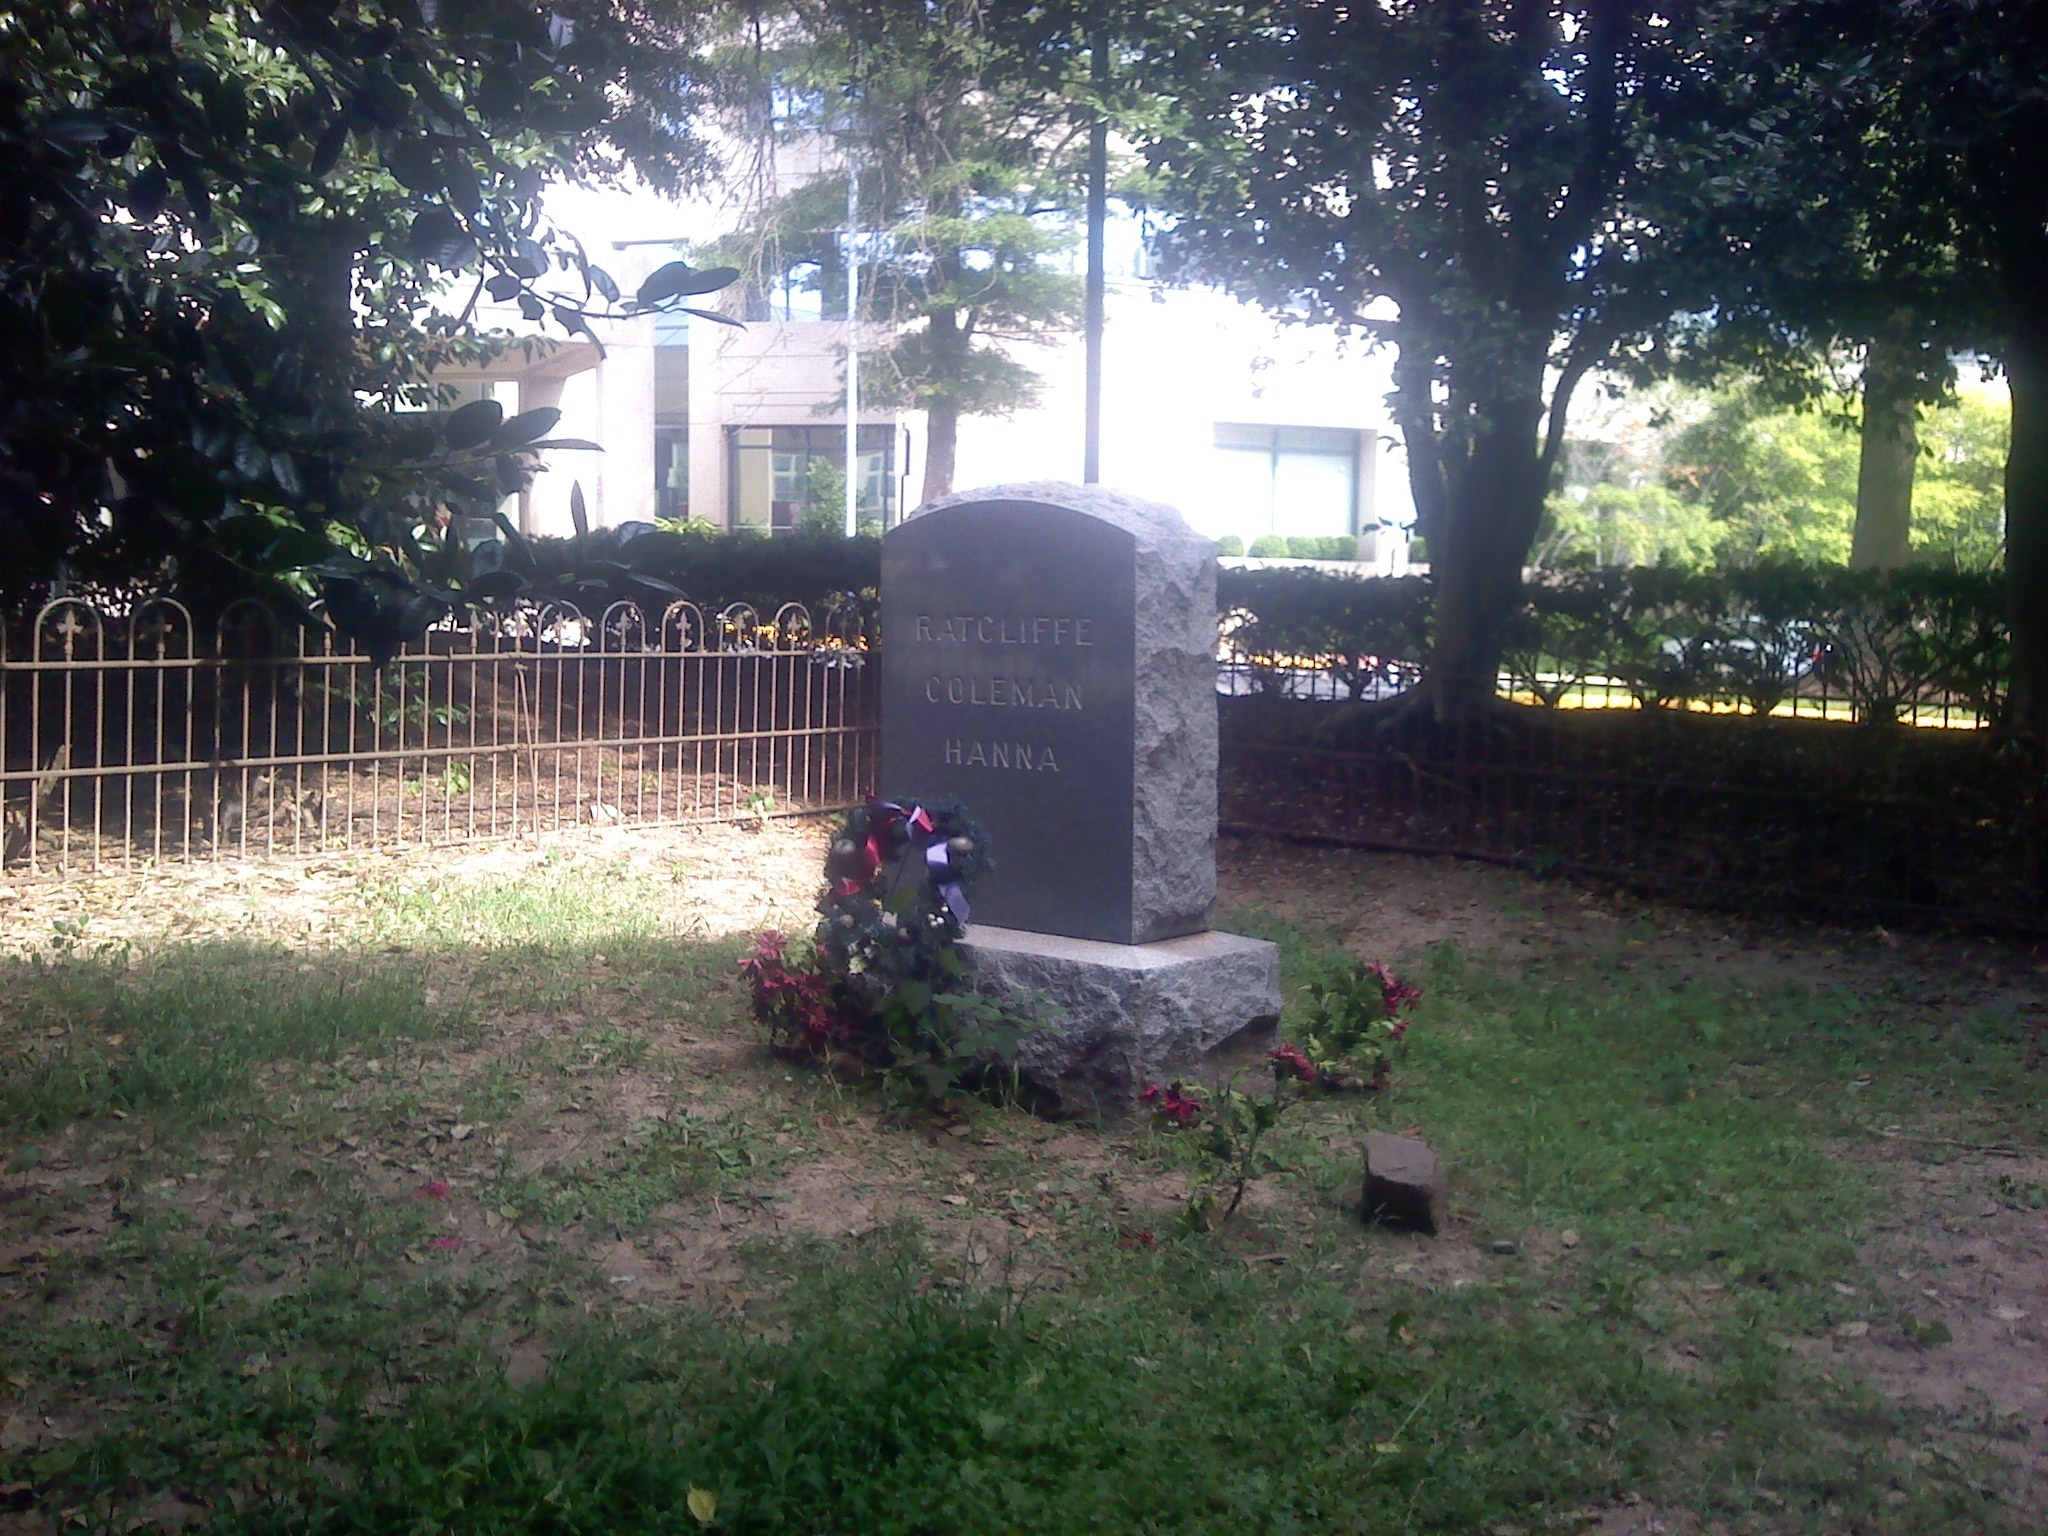 The Ratcliffe/Coleman/Hanna cemetery, where Laura Ratcliffe and her husband are buried - located in a grove of trees directly in front of the Washington Dulles Marriott Suites